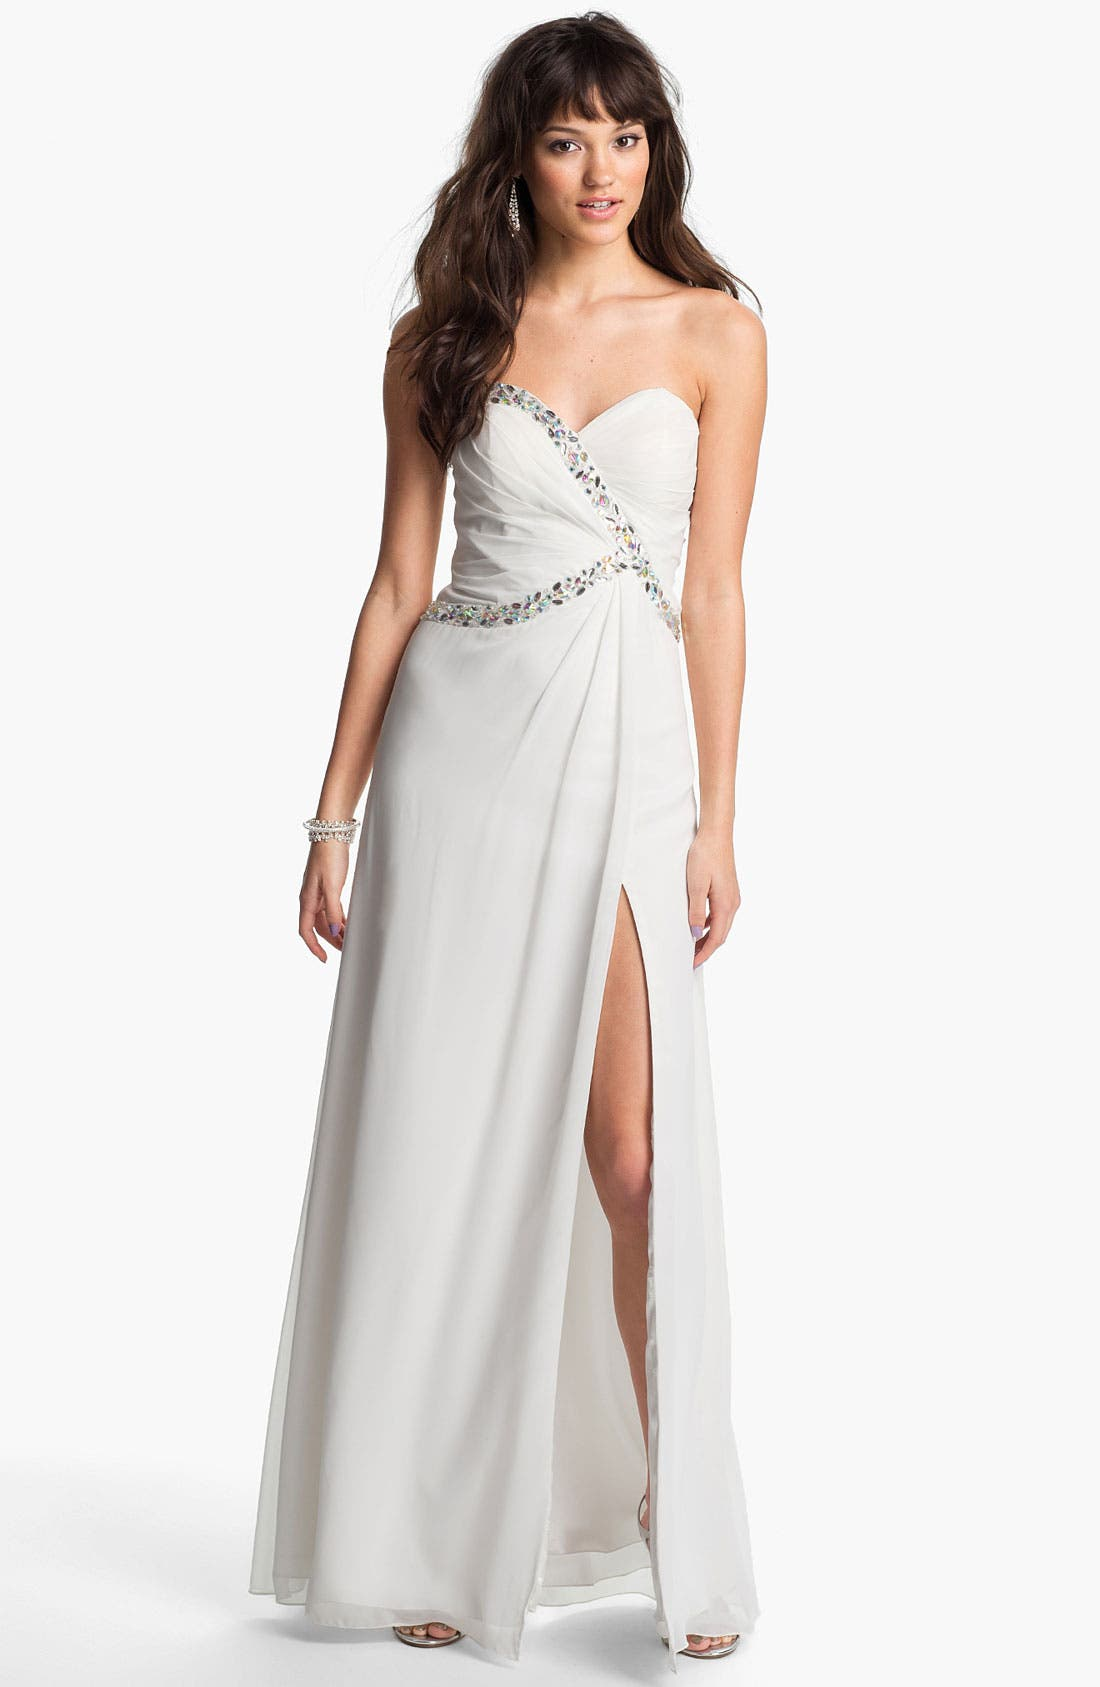 Alternate Image 1 Selected - Faviana Embellished Back Twist Chiffon Gown (Online Only)